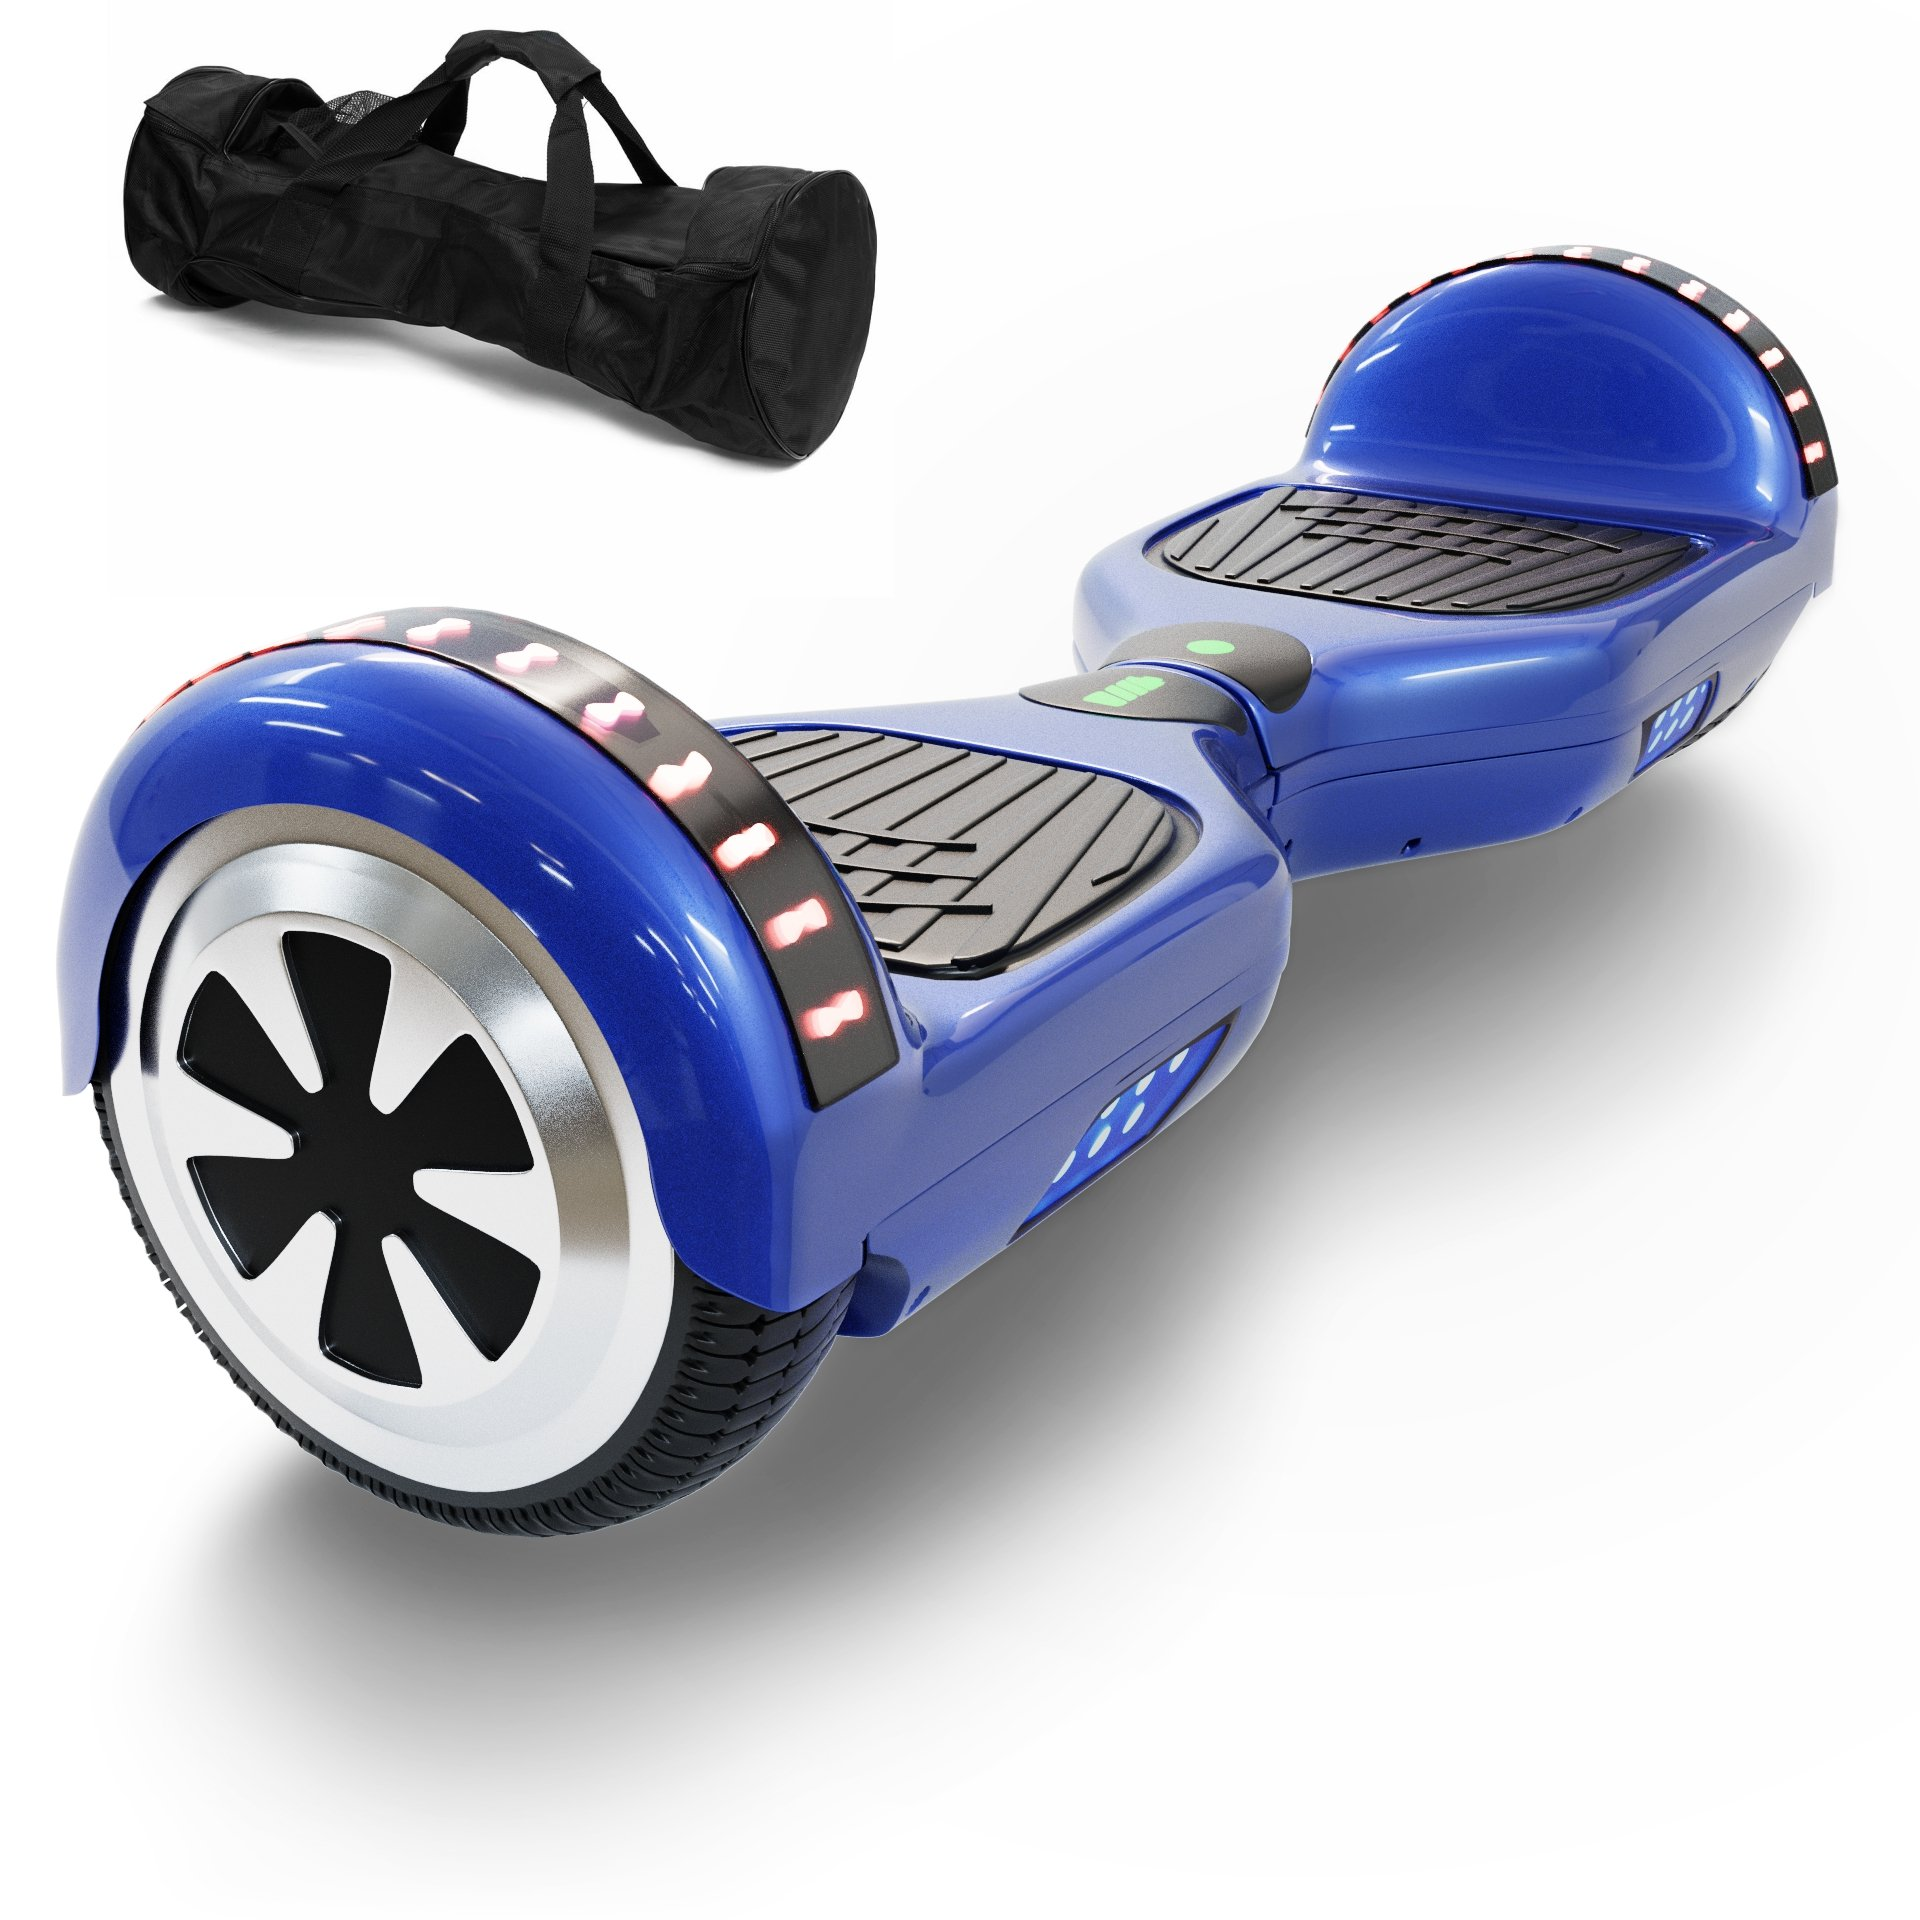 Hoverboard Self Balancing Scooter UL 2272 Certified with Powerful Bluetooth Speaker, Cool LED lights and FREE Portable Carrying Bag (Royal Blue)